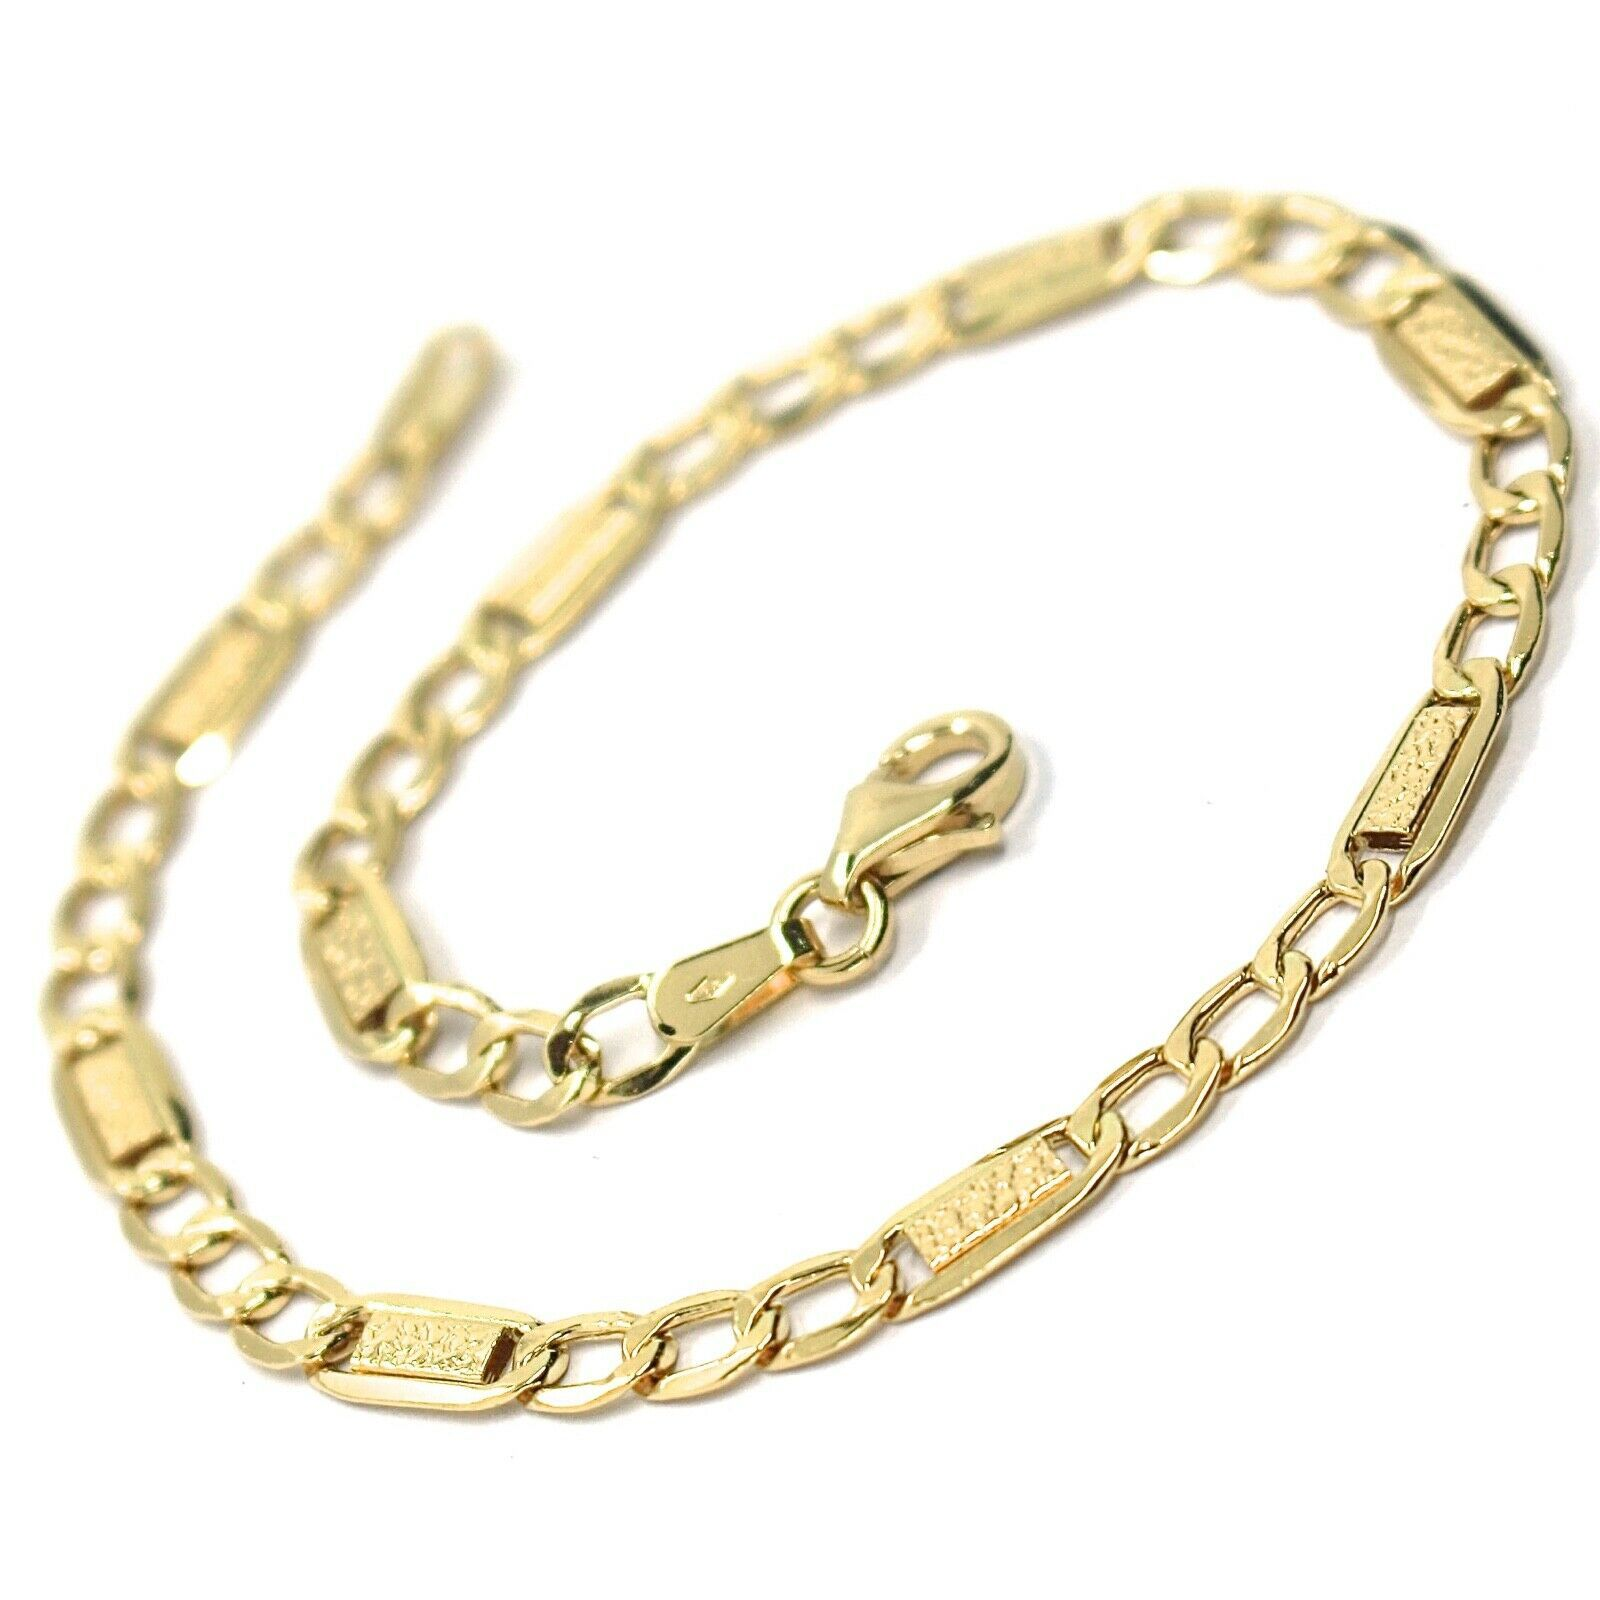 18K YELLOW GOLD BRACELET 4 MM, 7.9 INCHES, ALTERNATE GOURMETTE AND BUBBLES PLATE image 2